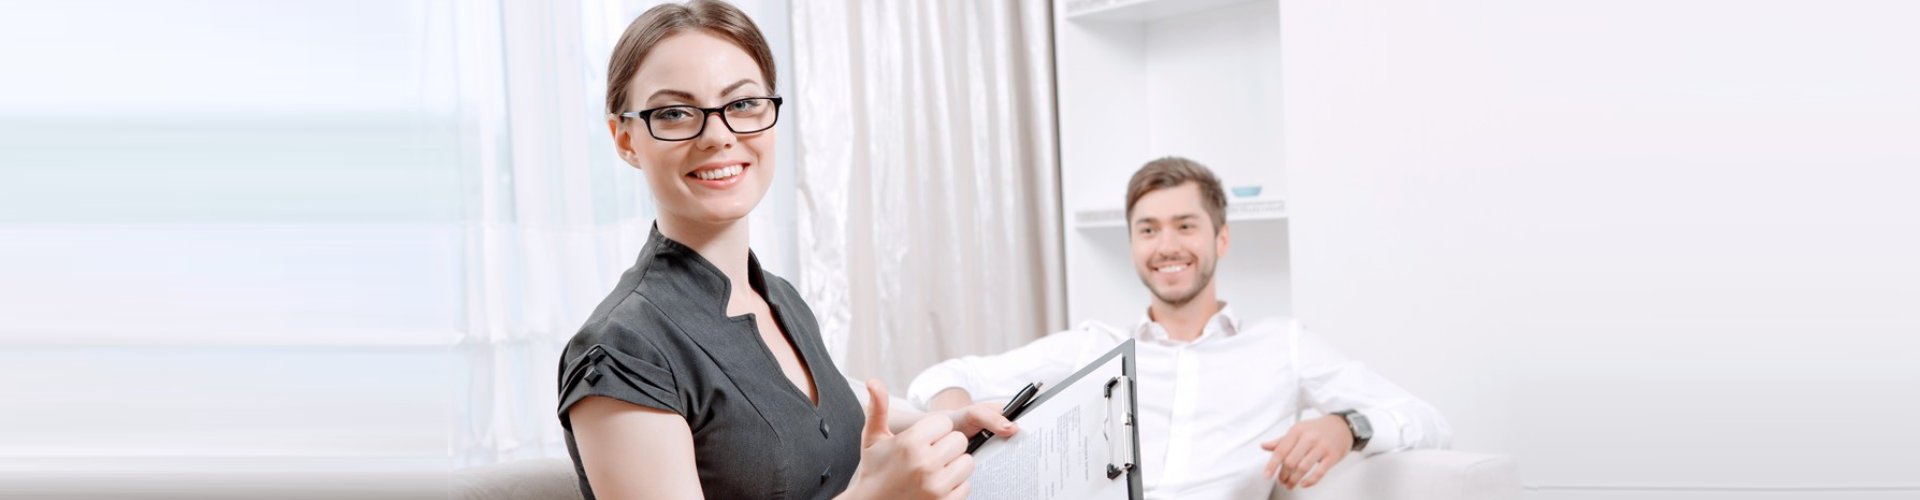 smiling female consultant at the office